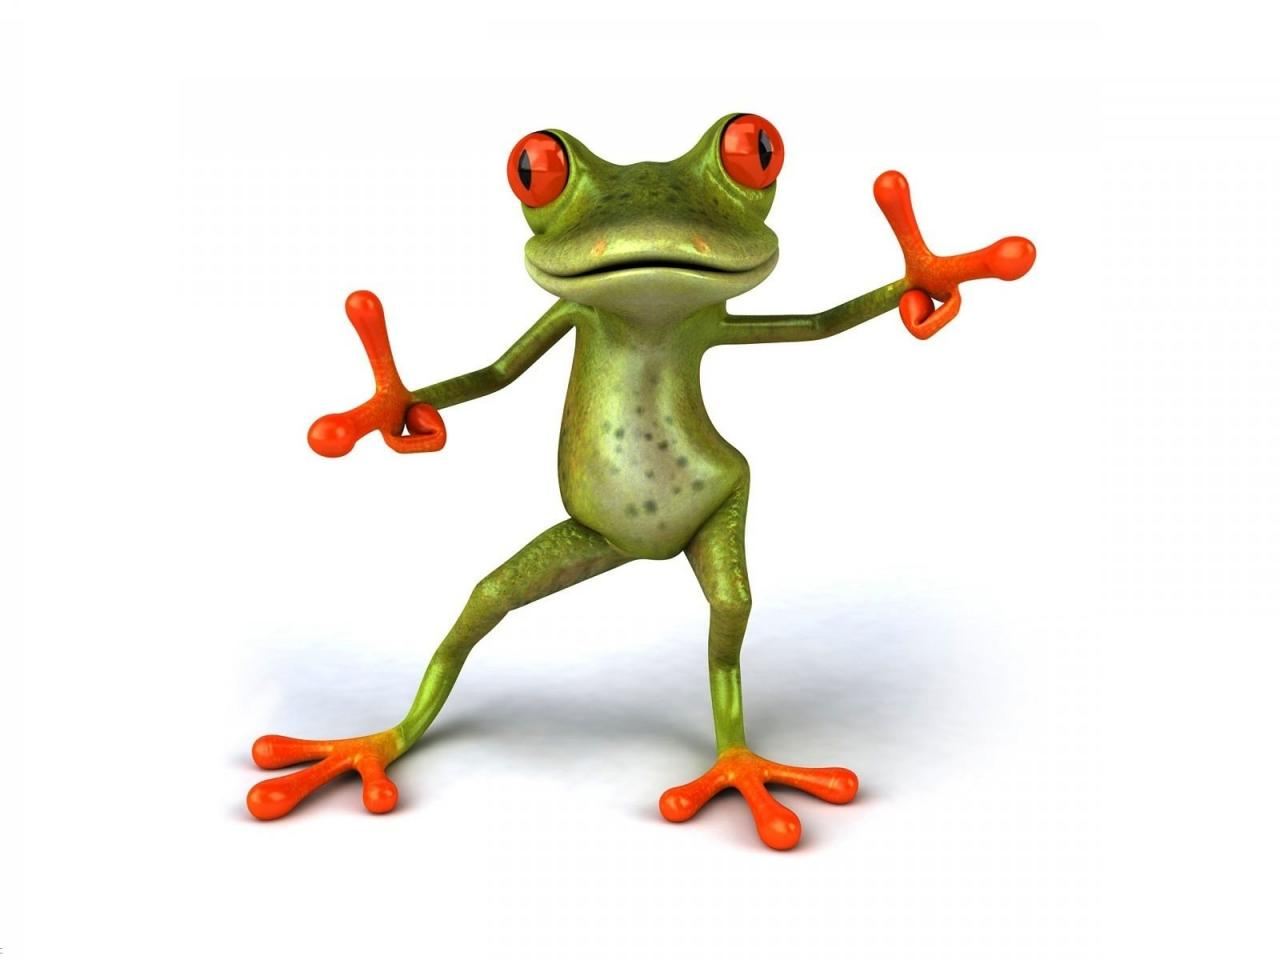 Images of cute frogs clipart best - Frog cartoon wallpaper ...